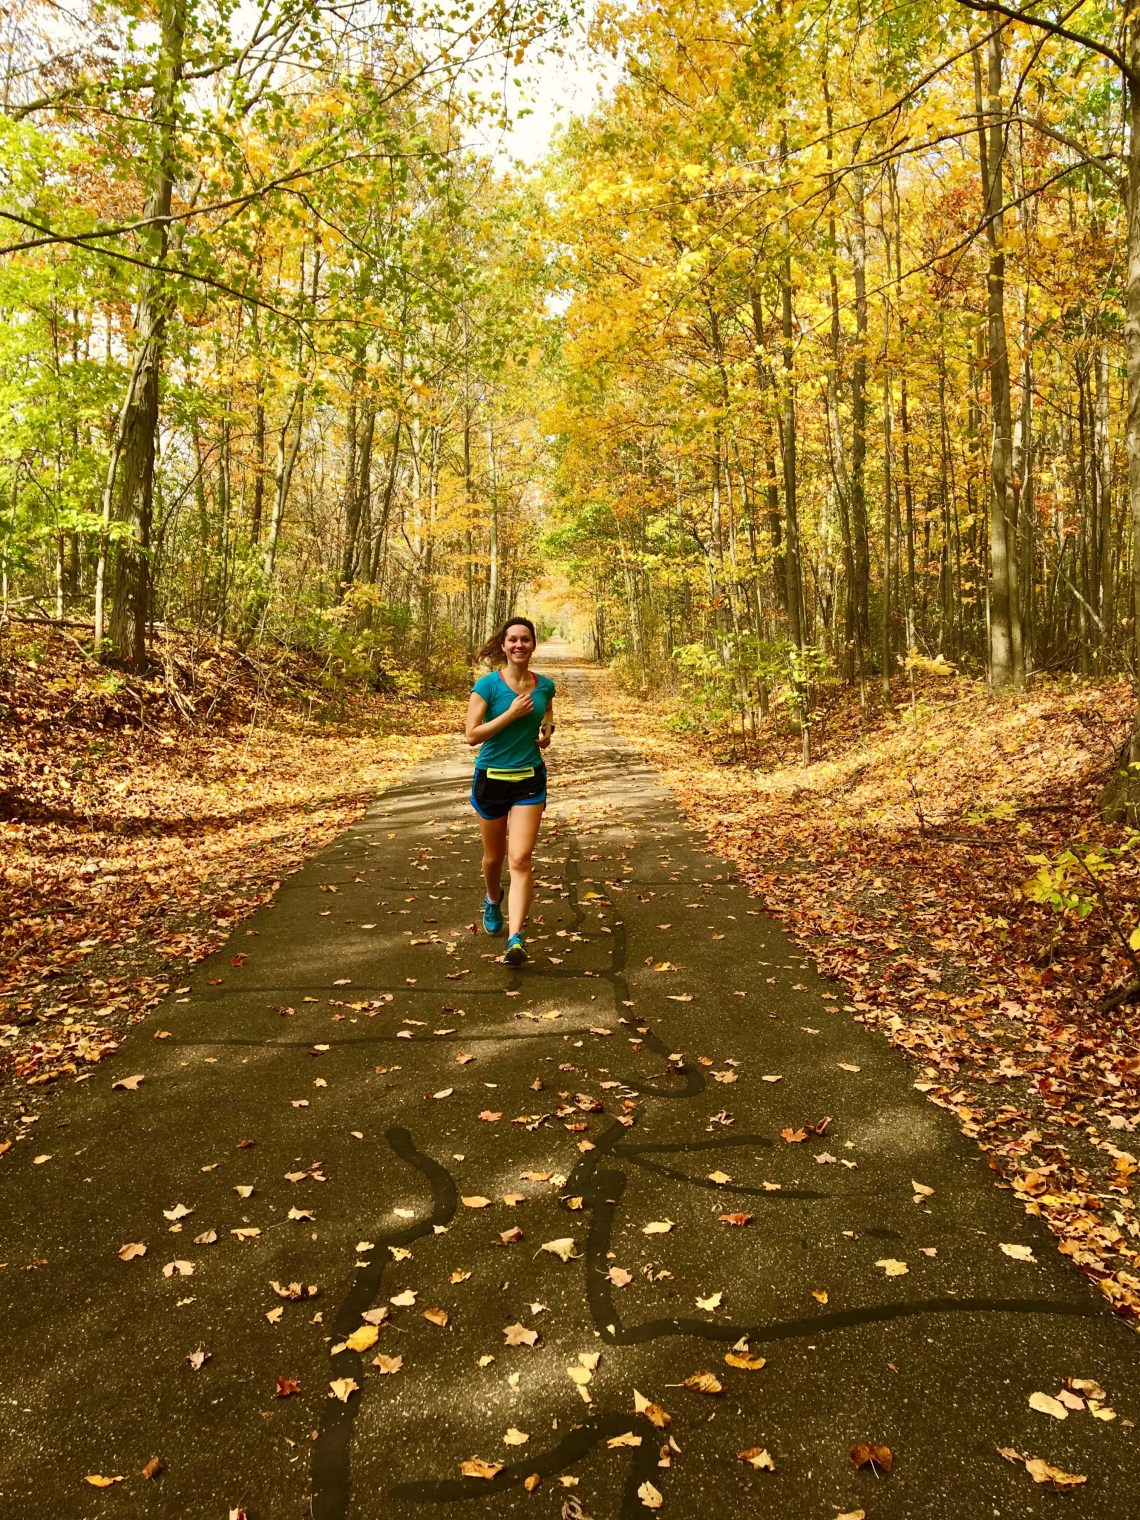 These 8 fall running tips will take your training to the next level this season!